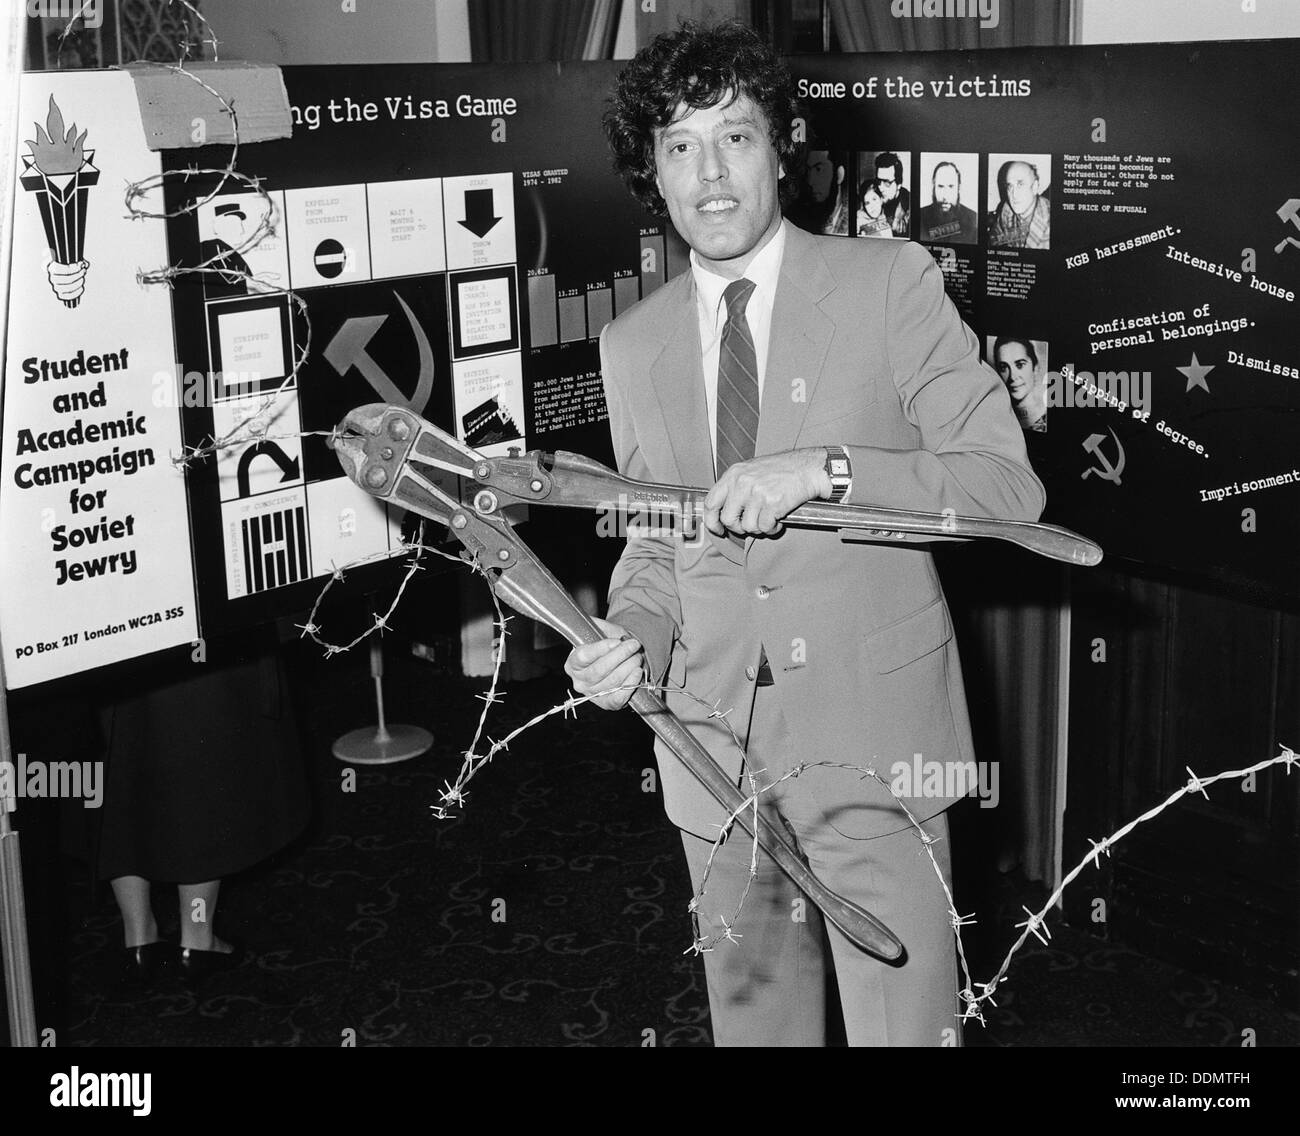 Tom Stoppard (1937-), British Playwright, opening an exhibition for Soviet Jewry. Artist: Sidney Harris - Stock Image